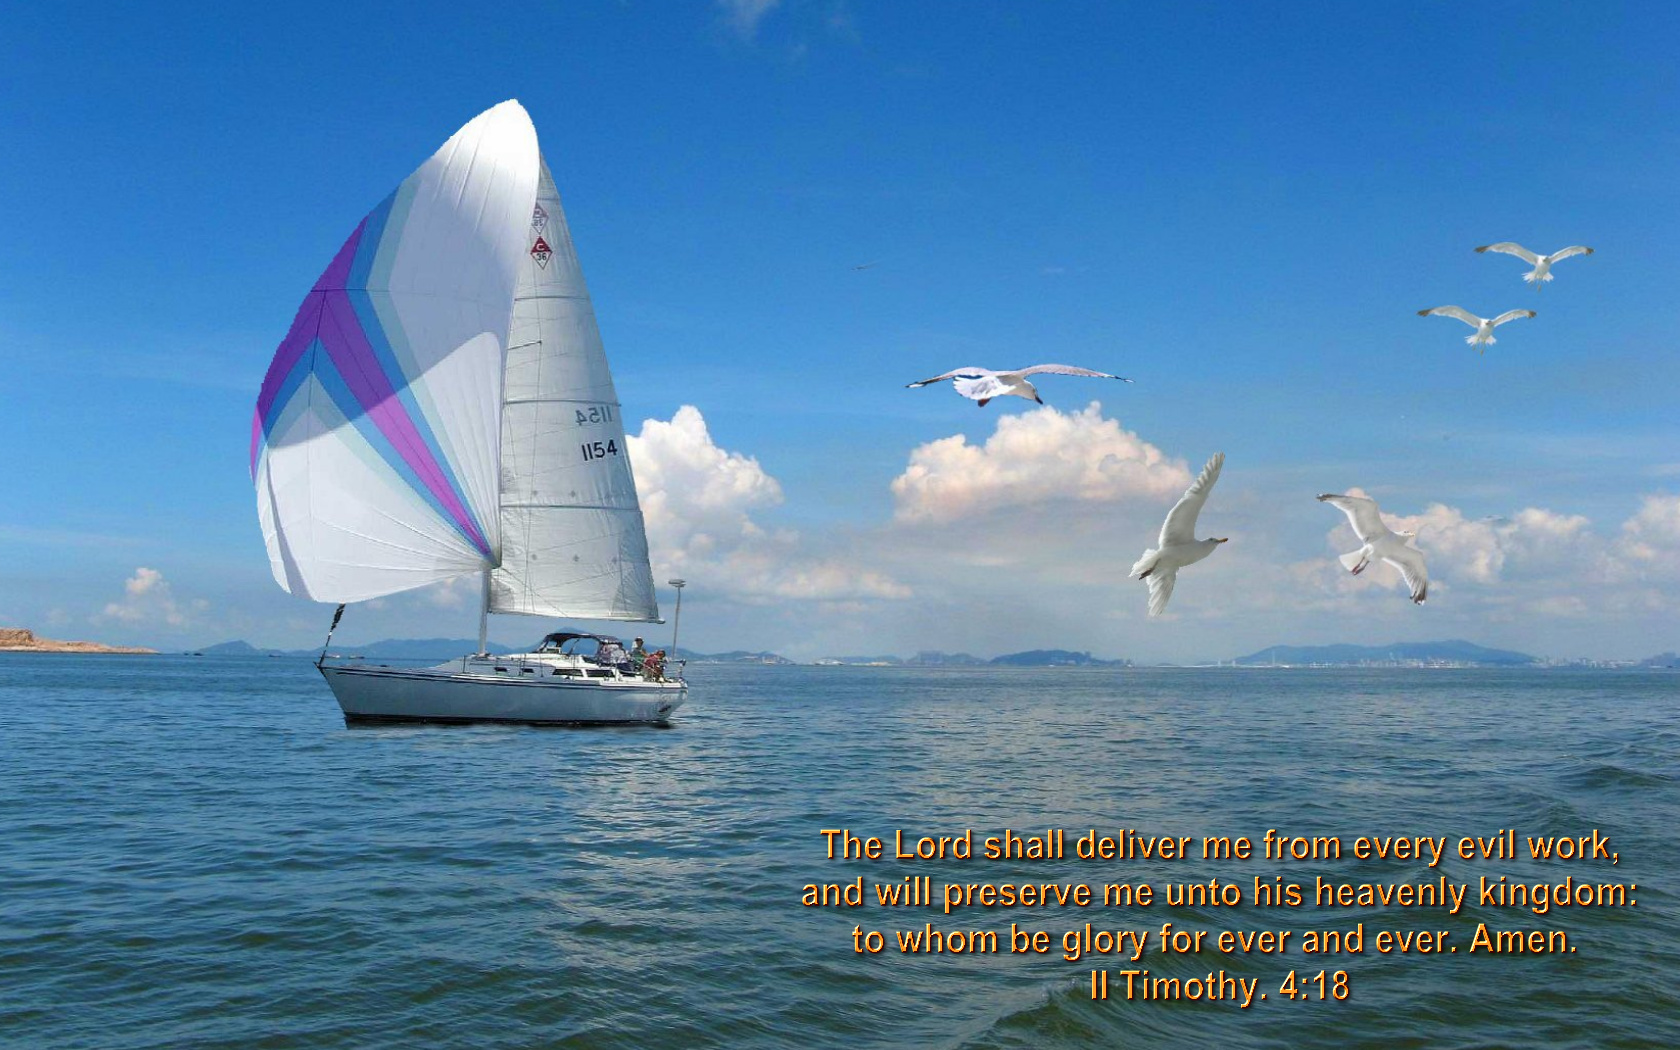 Bible verses sailing wallpaper 171 Christian Wallpapers 1680x1050